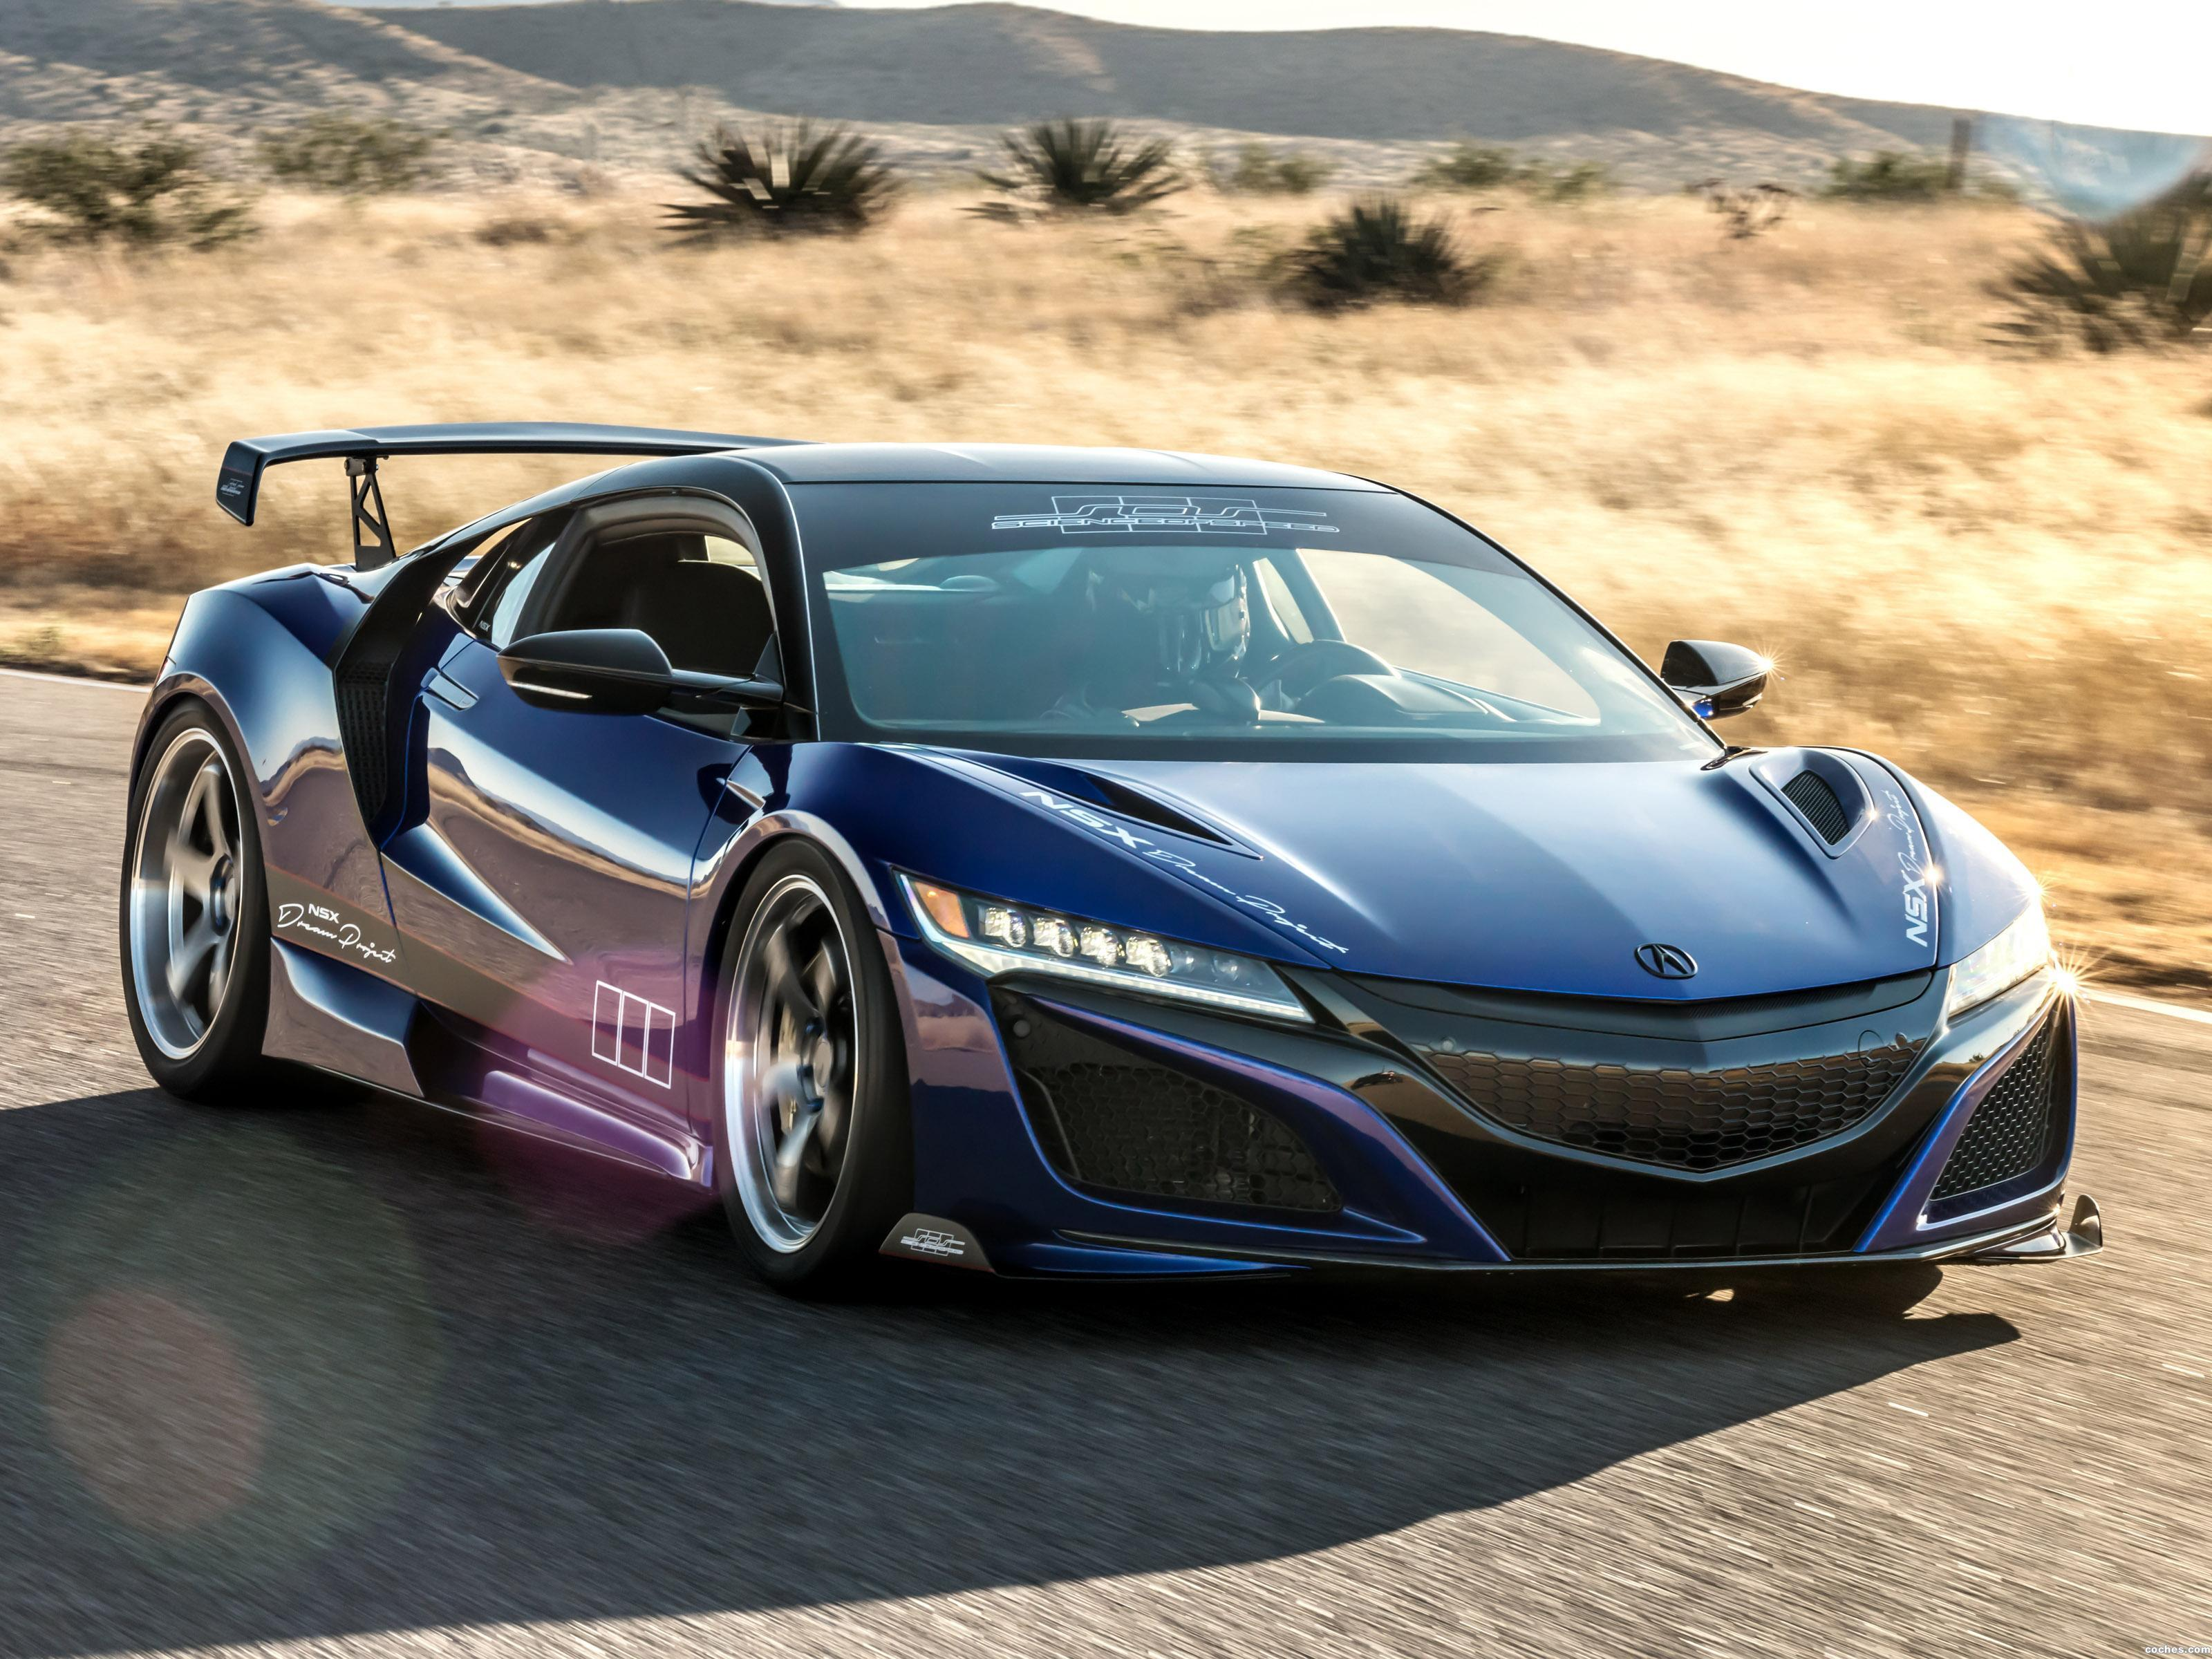 Foto 0 de Acura NSX Dream Project Scienceofspeed 2017